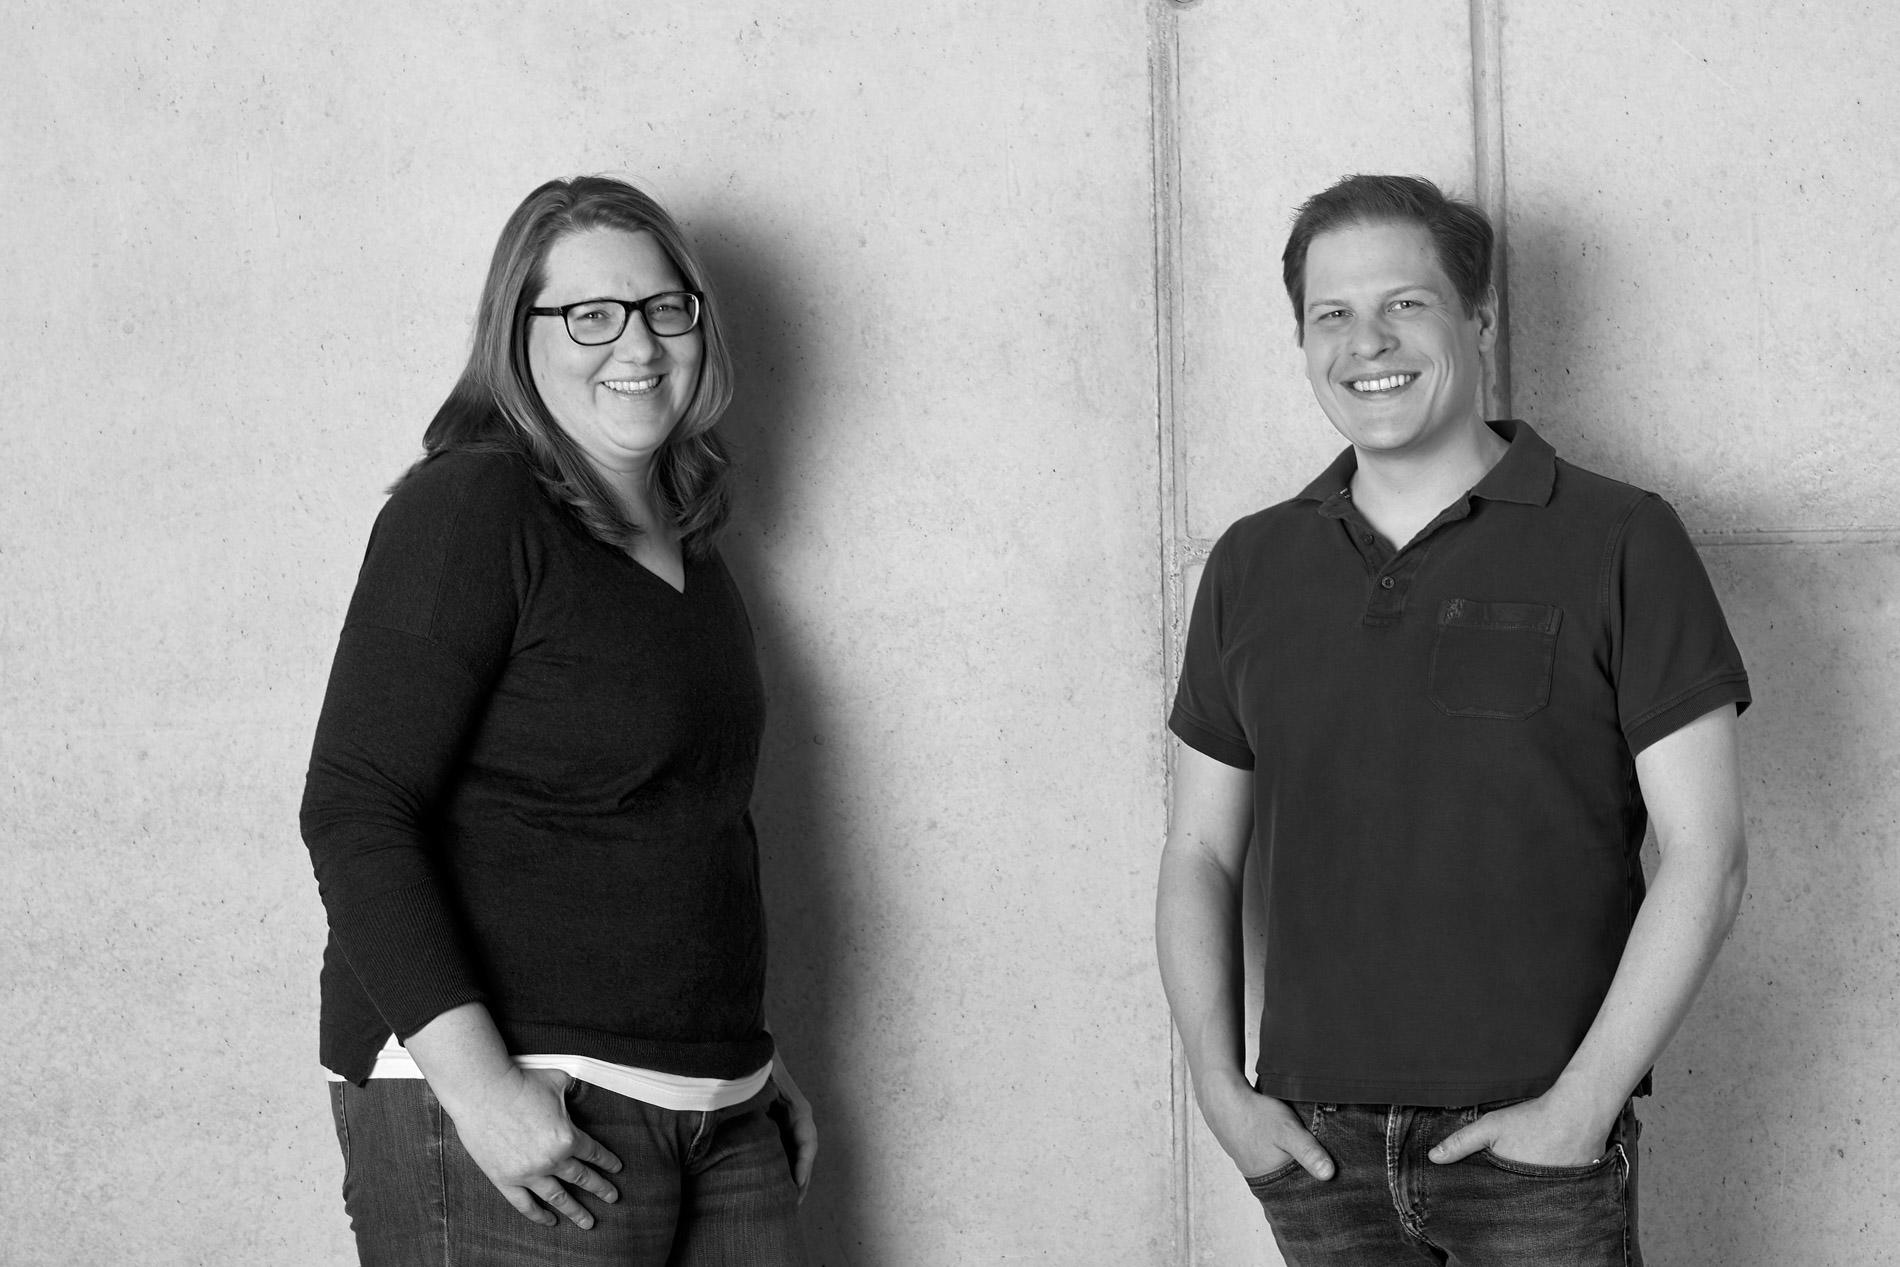 Germany's Xentral nabs $20M led by Sequoia to help online-facing SMBs run back offices better